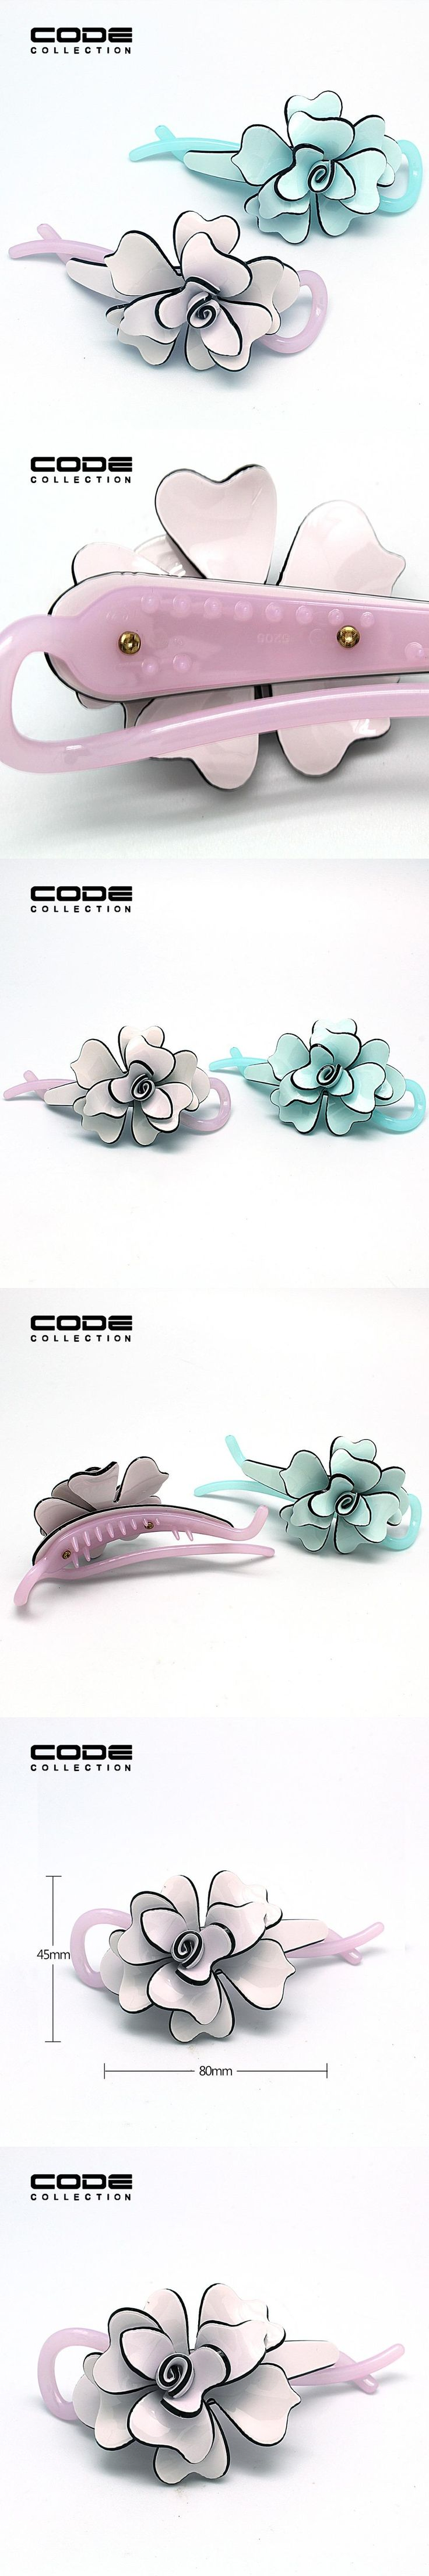 Top Quality Acrylic Banana Clip Barrettes Elegant Paisley Hair  Hairpins Clip Accessories Handmade Antique Jaw Clamp for Women